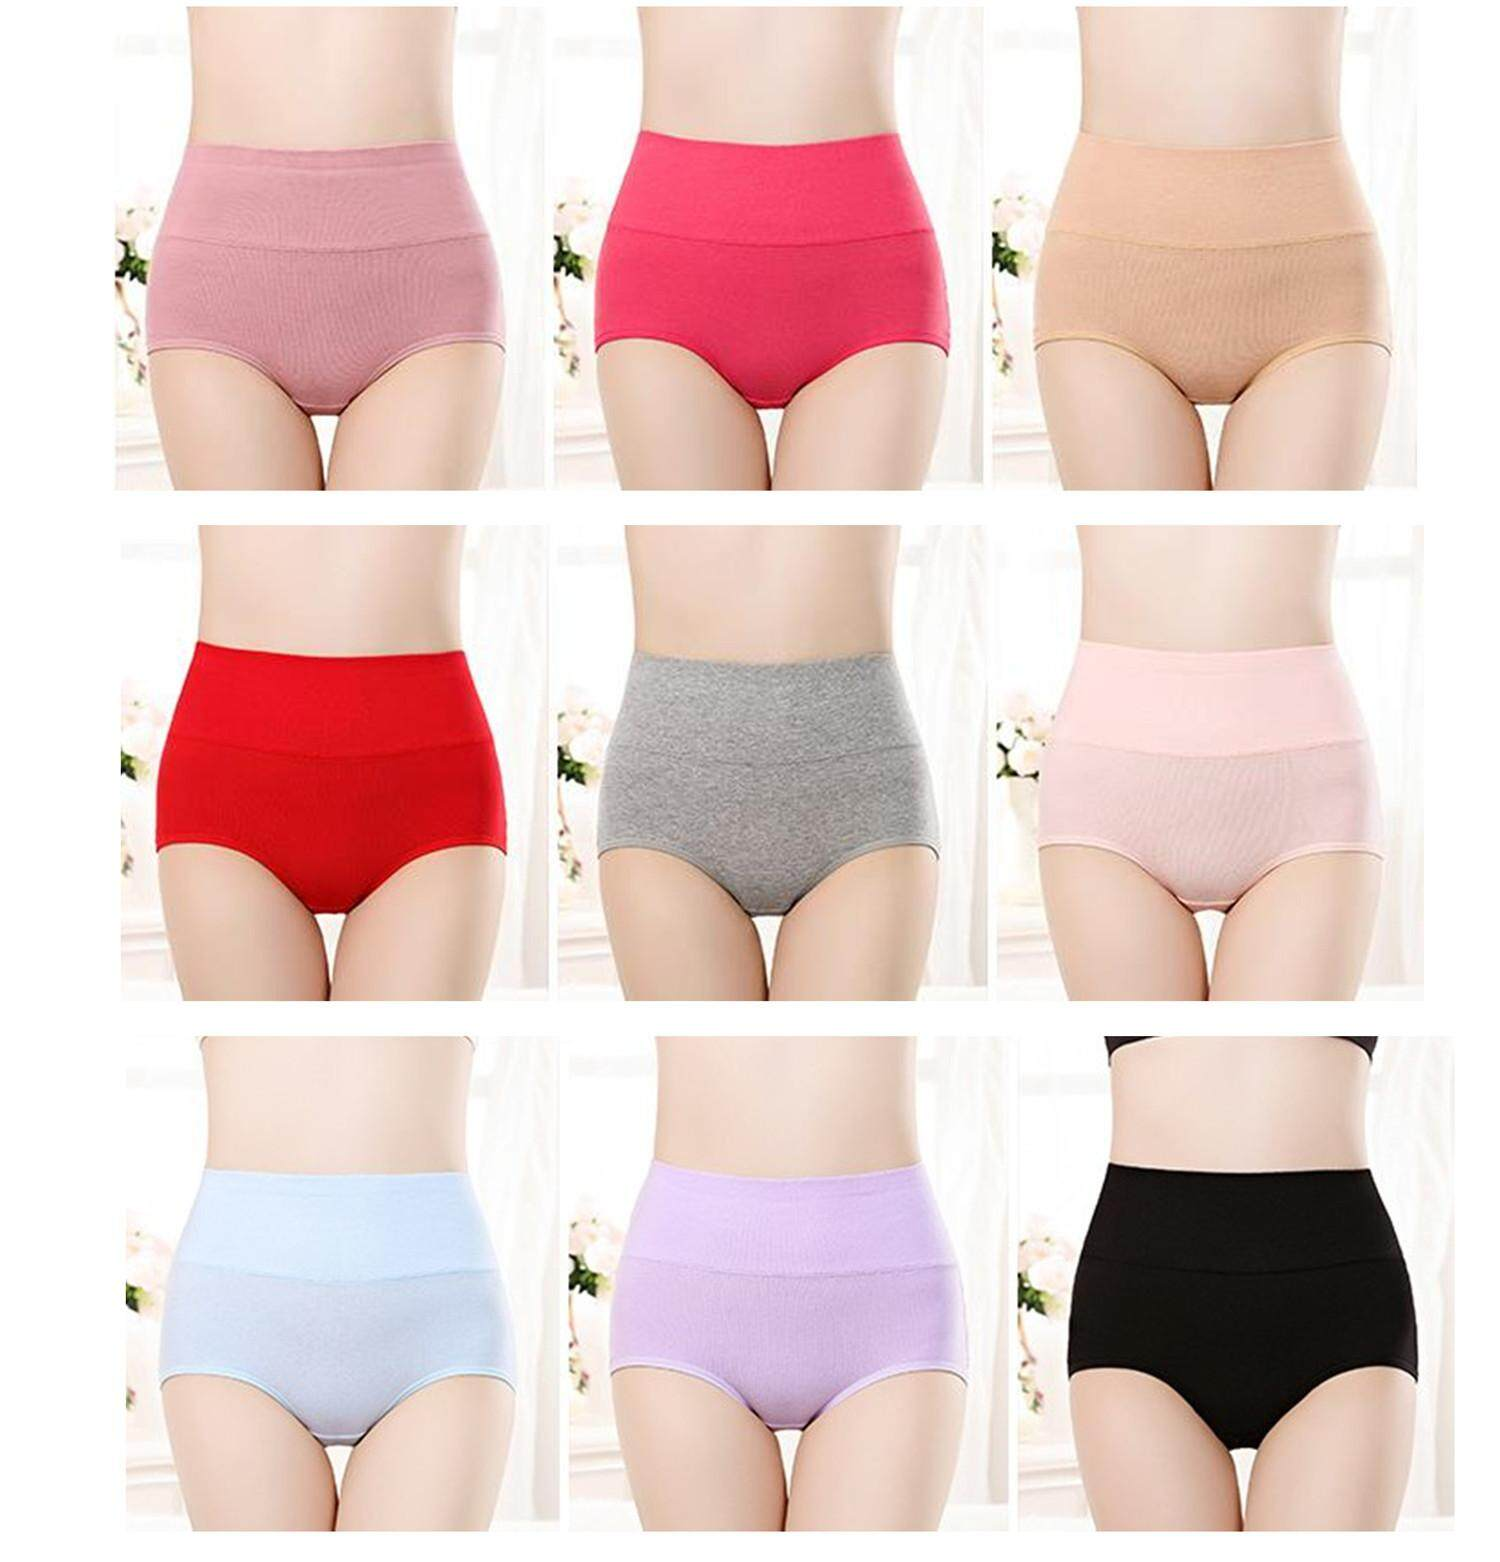 panties - buy panties at best price in malaysia | www.lazada.my